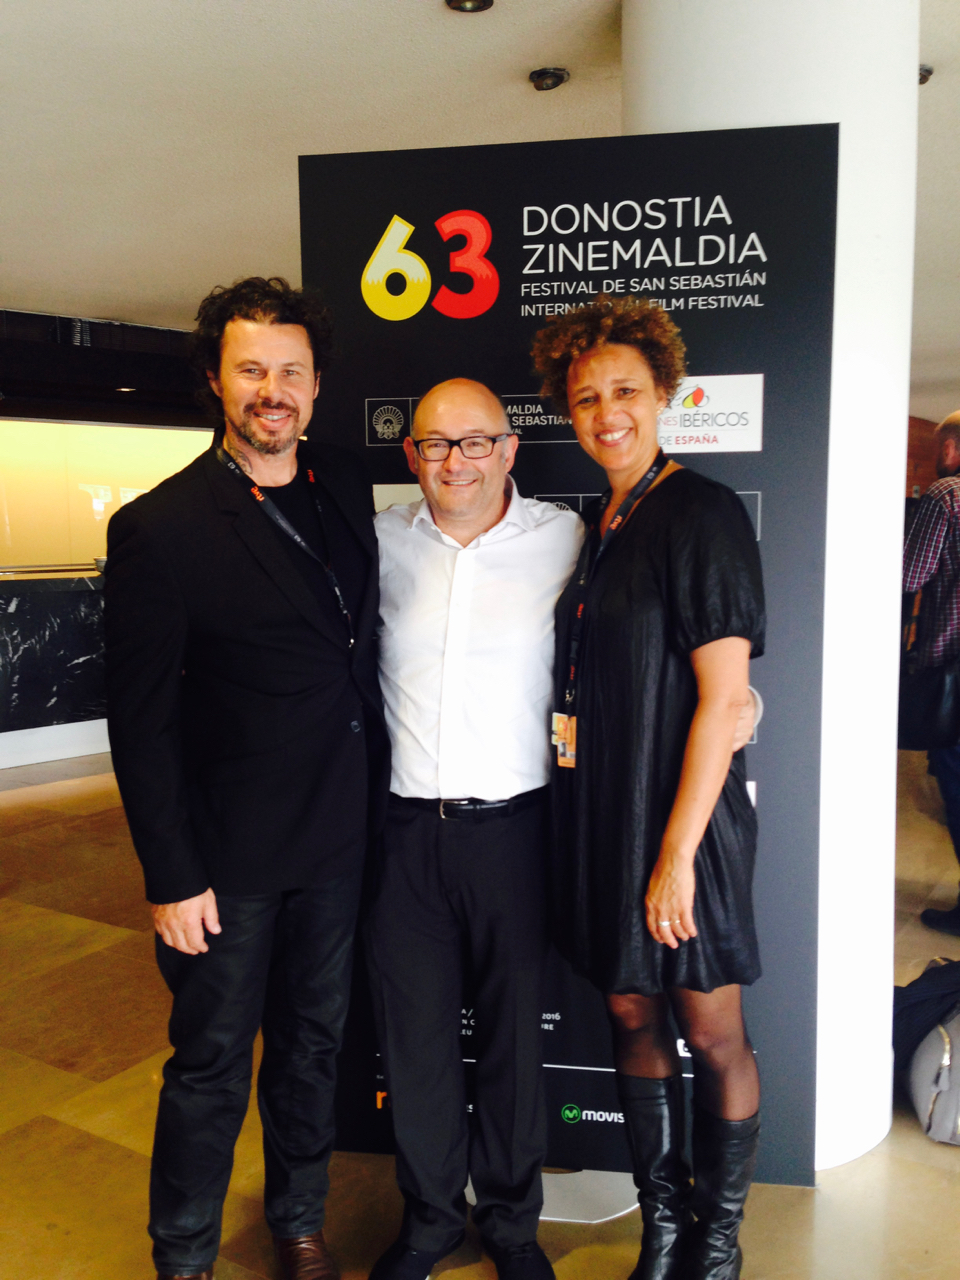 With José Luis Rebordinos Director of San Sebastian film festival